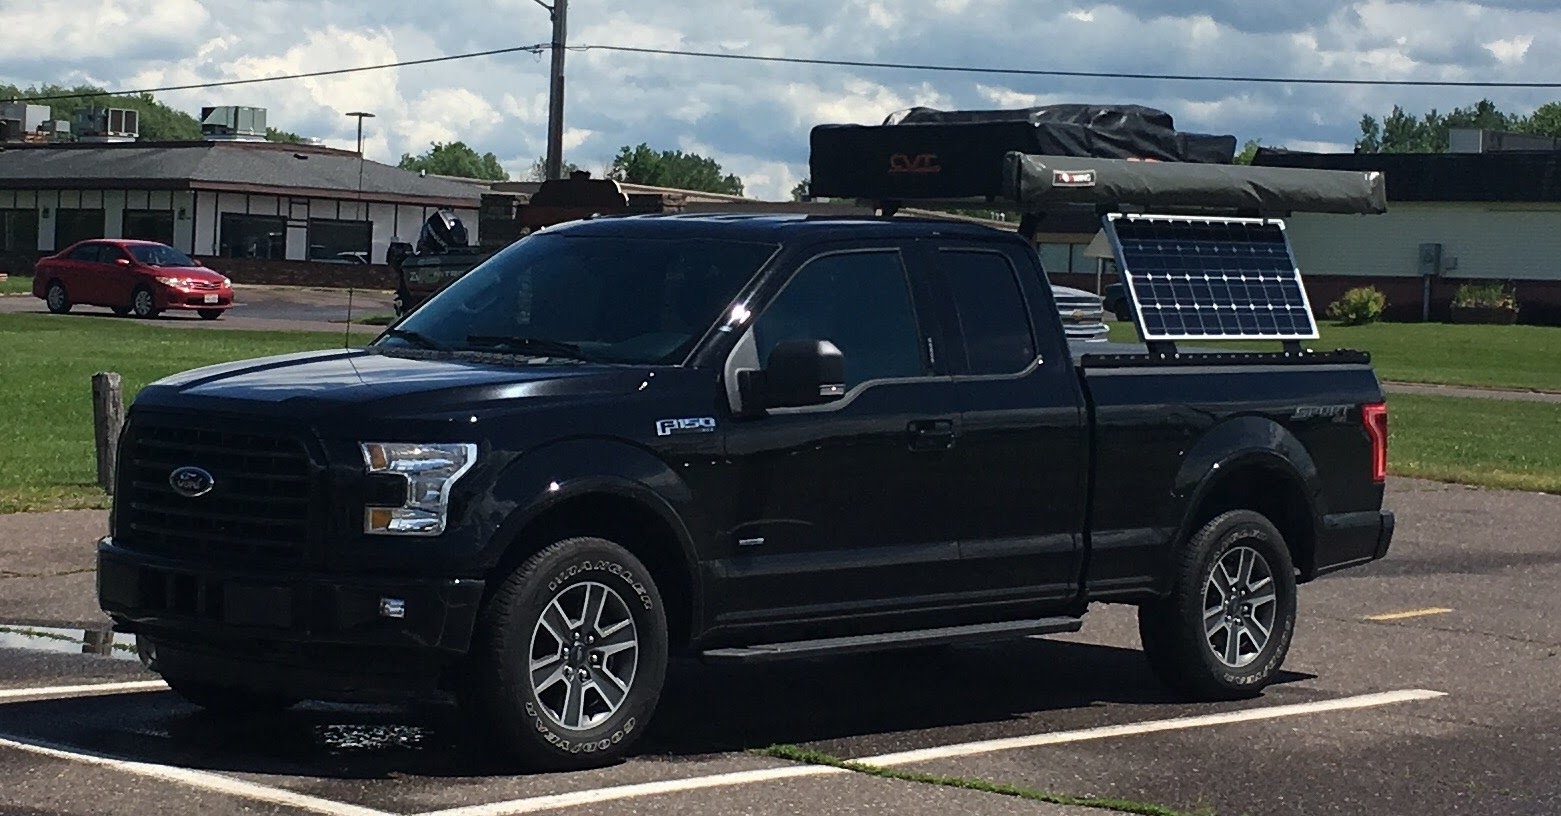 2.7l Real World MPG Post - Page 10 - Ford F150 Forum - Community of ...